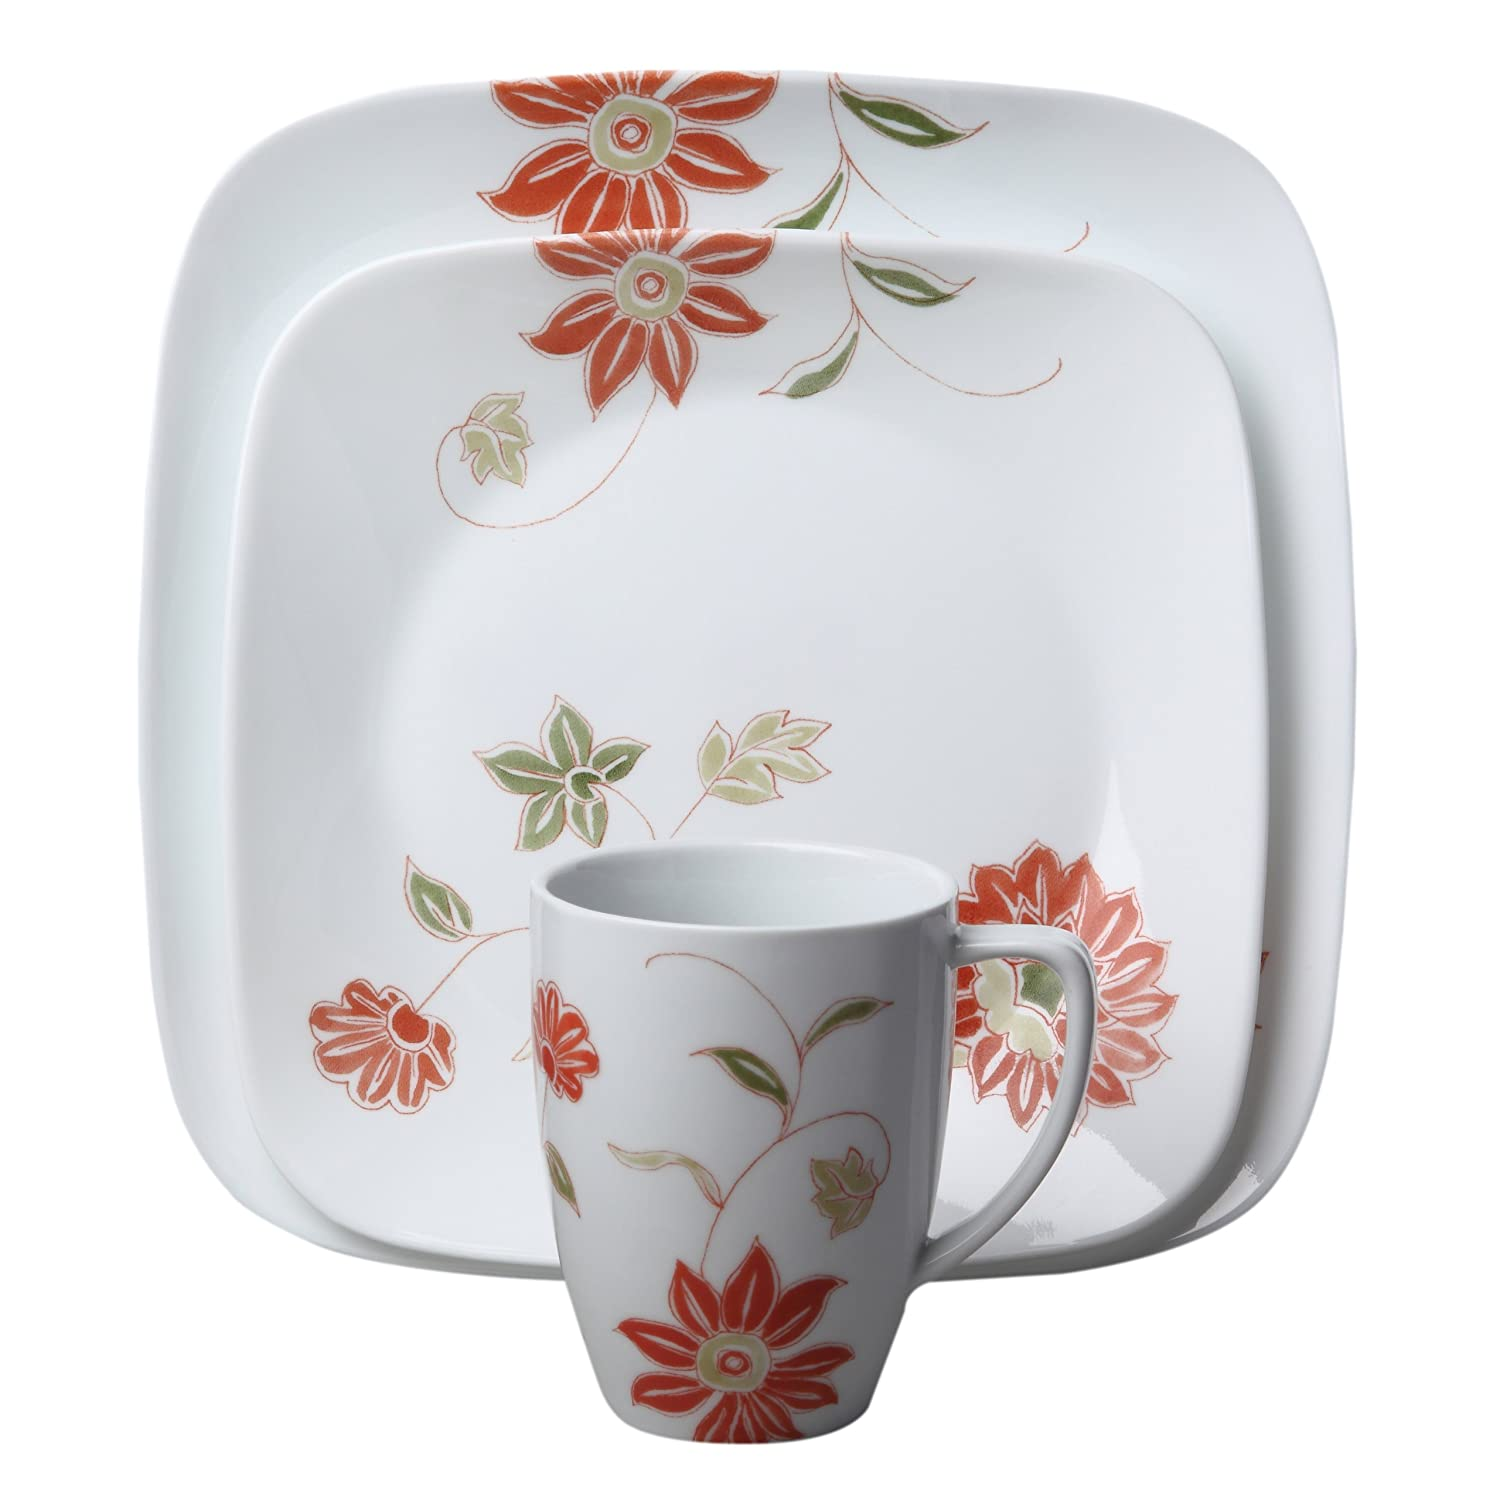 Corelle 16 Piece Square Jacaranda Dinnerware Set: Amazon.co.uk: Kitchen U0026  Home